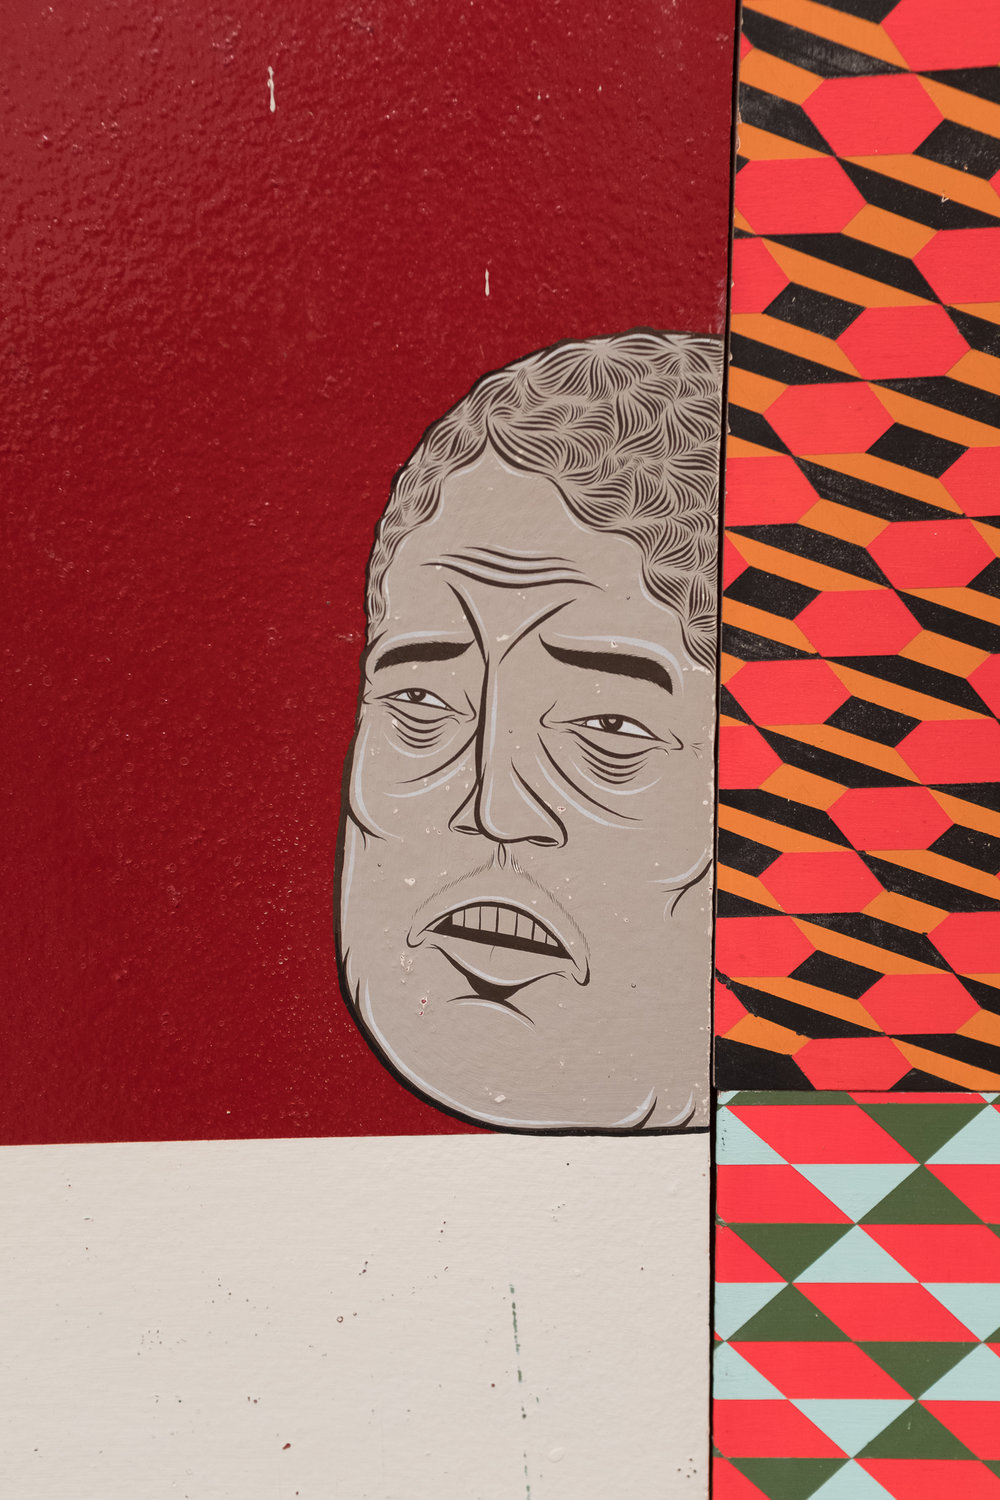 Barry_mcgee-5619.jpg